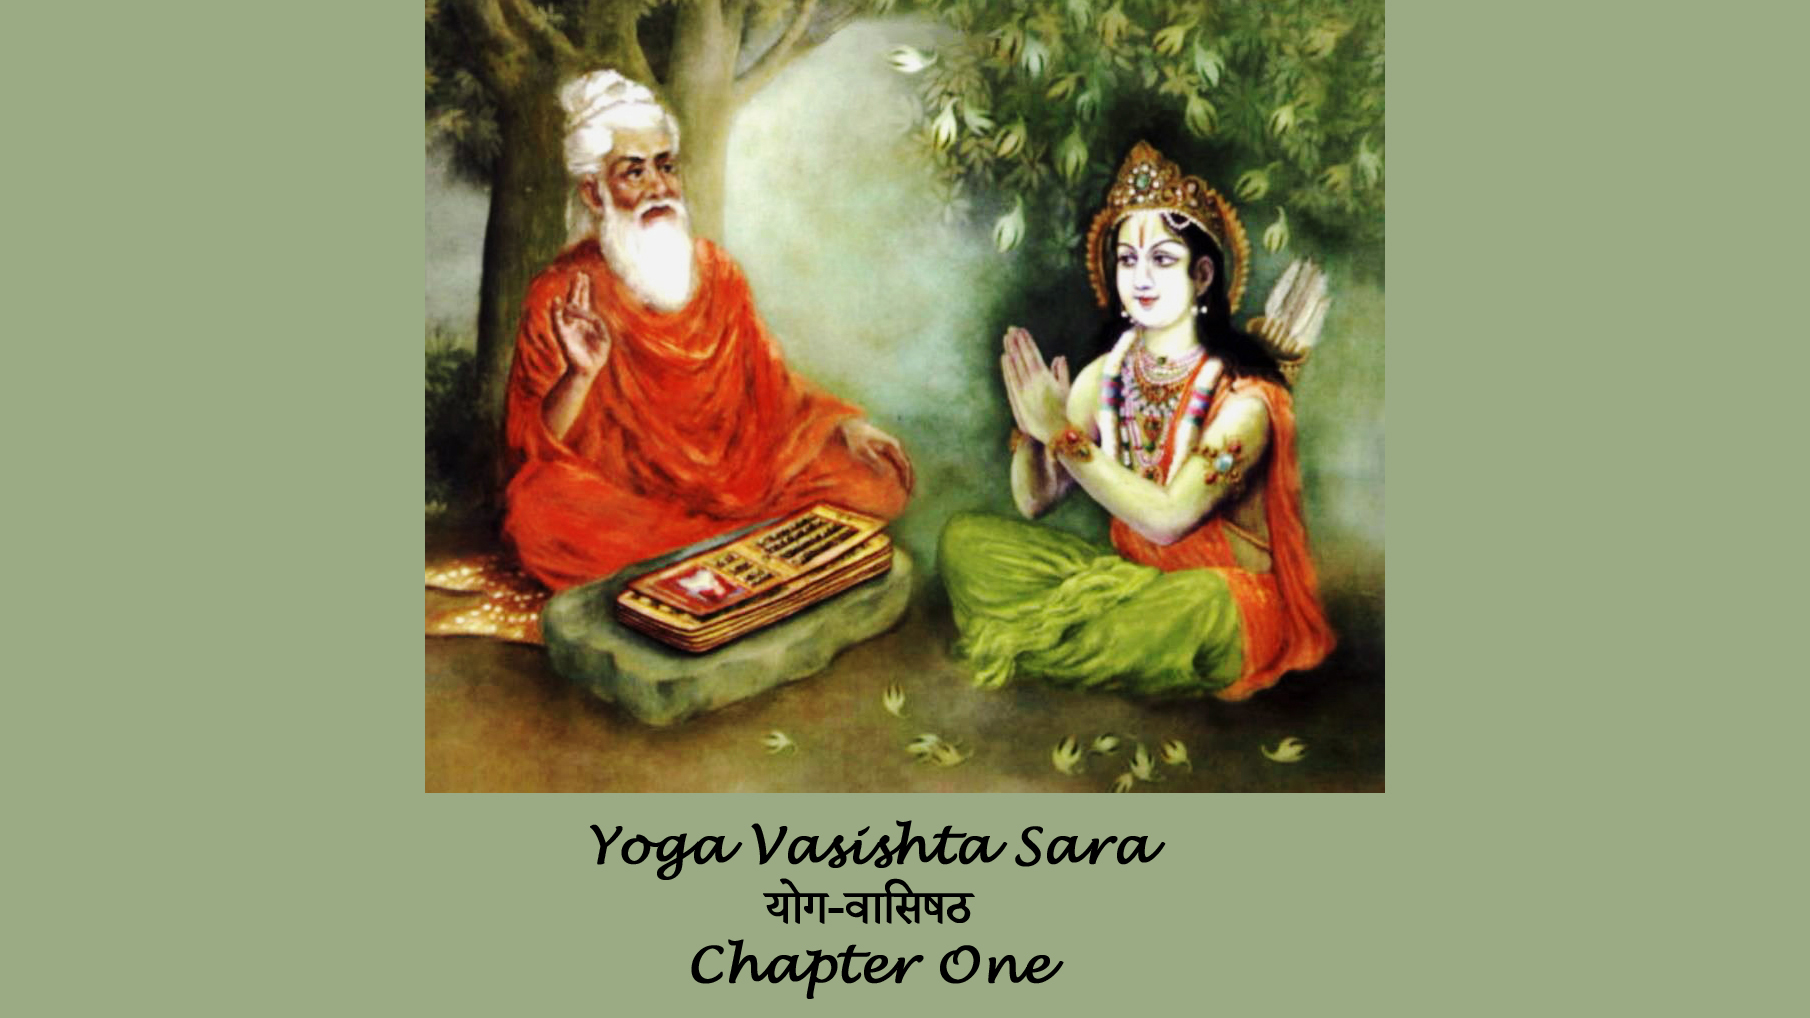 Yoga Vasishta Sara Chapter 1